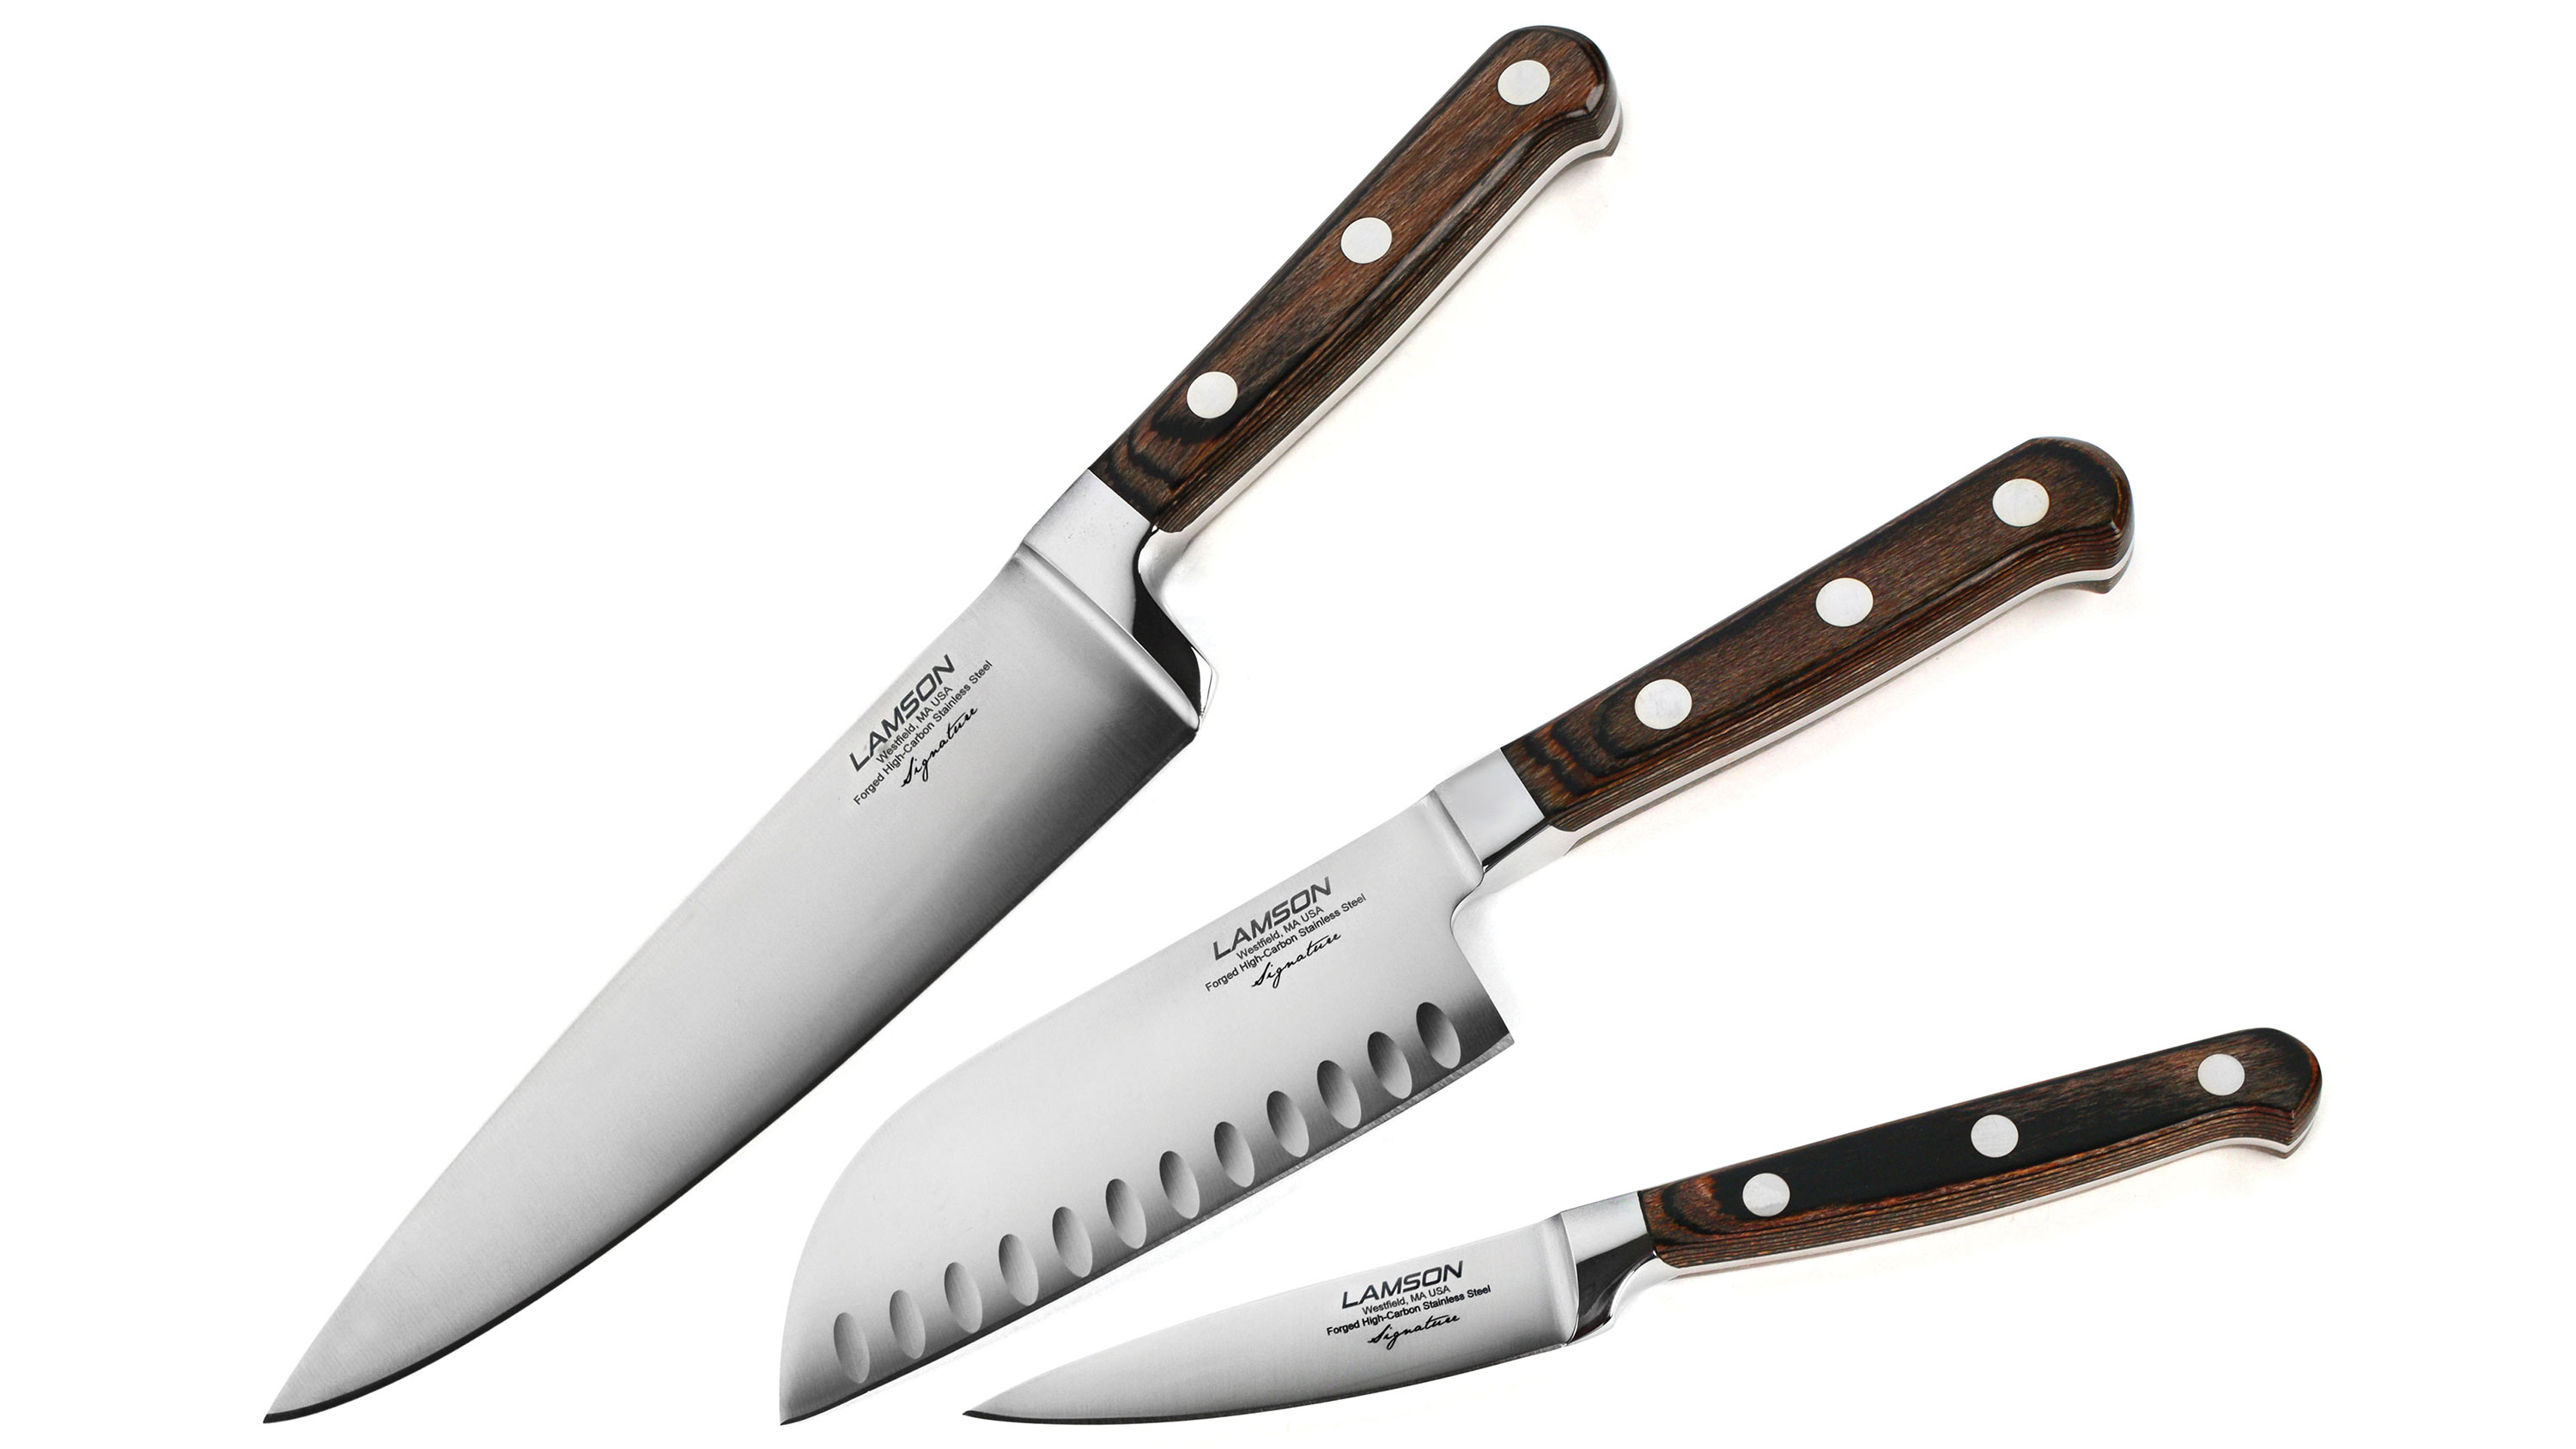 Lamson Signature Knife Set 3 Piece Cutlery And More